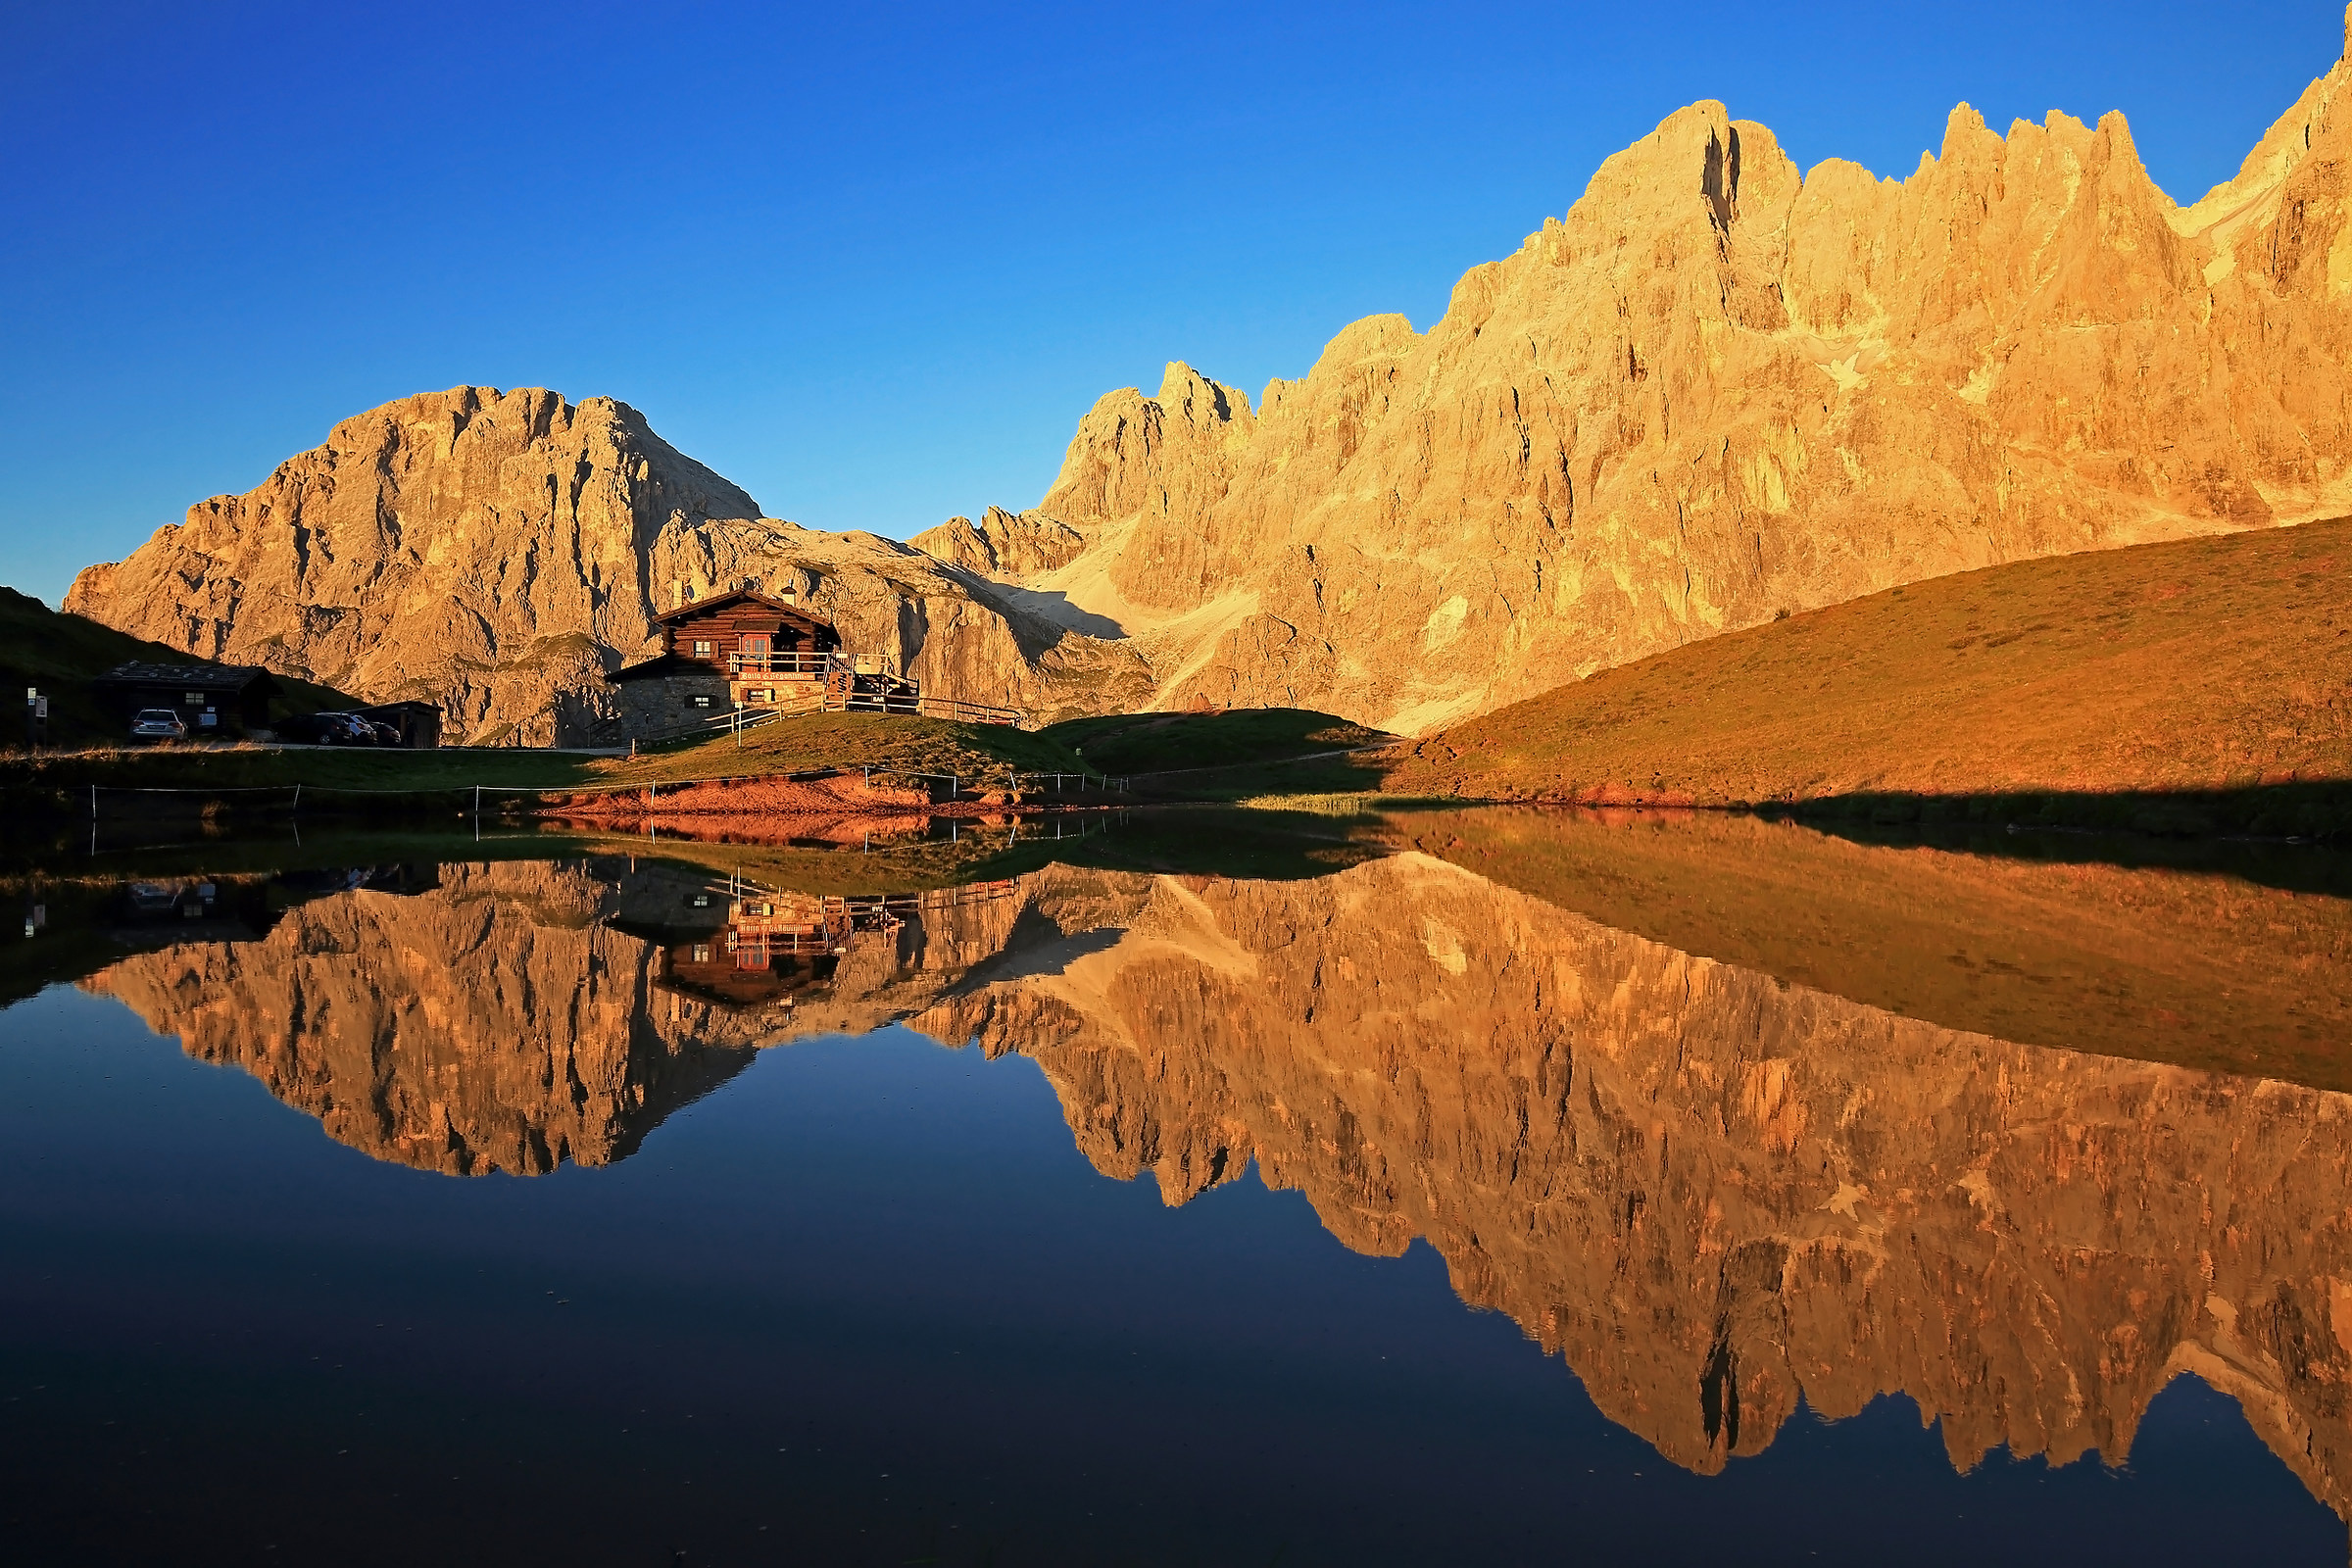 Reflections on alpine puddle....